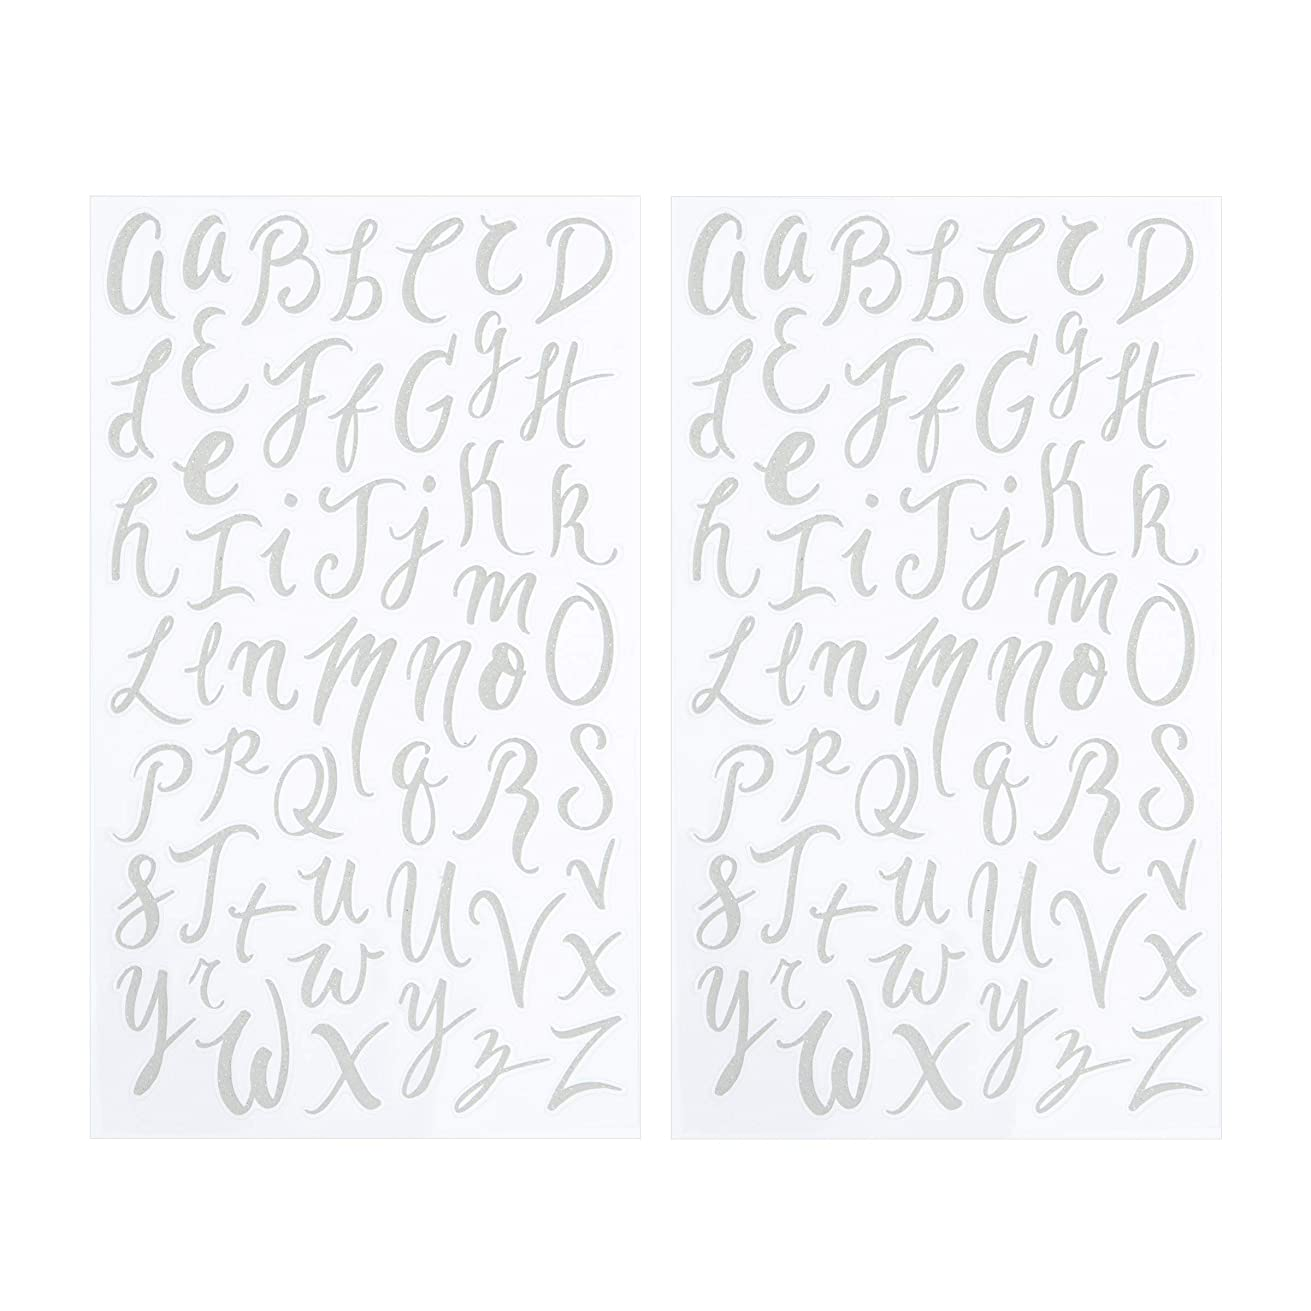 Darice 30052961 Small Handwriting Font Letter Stickers: White Glitter, 104 pc